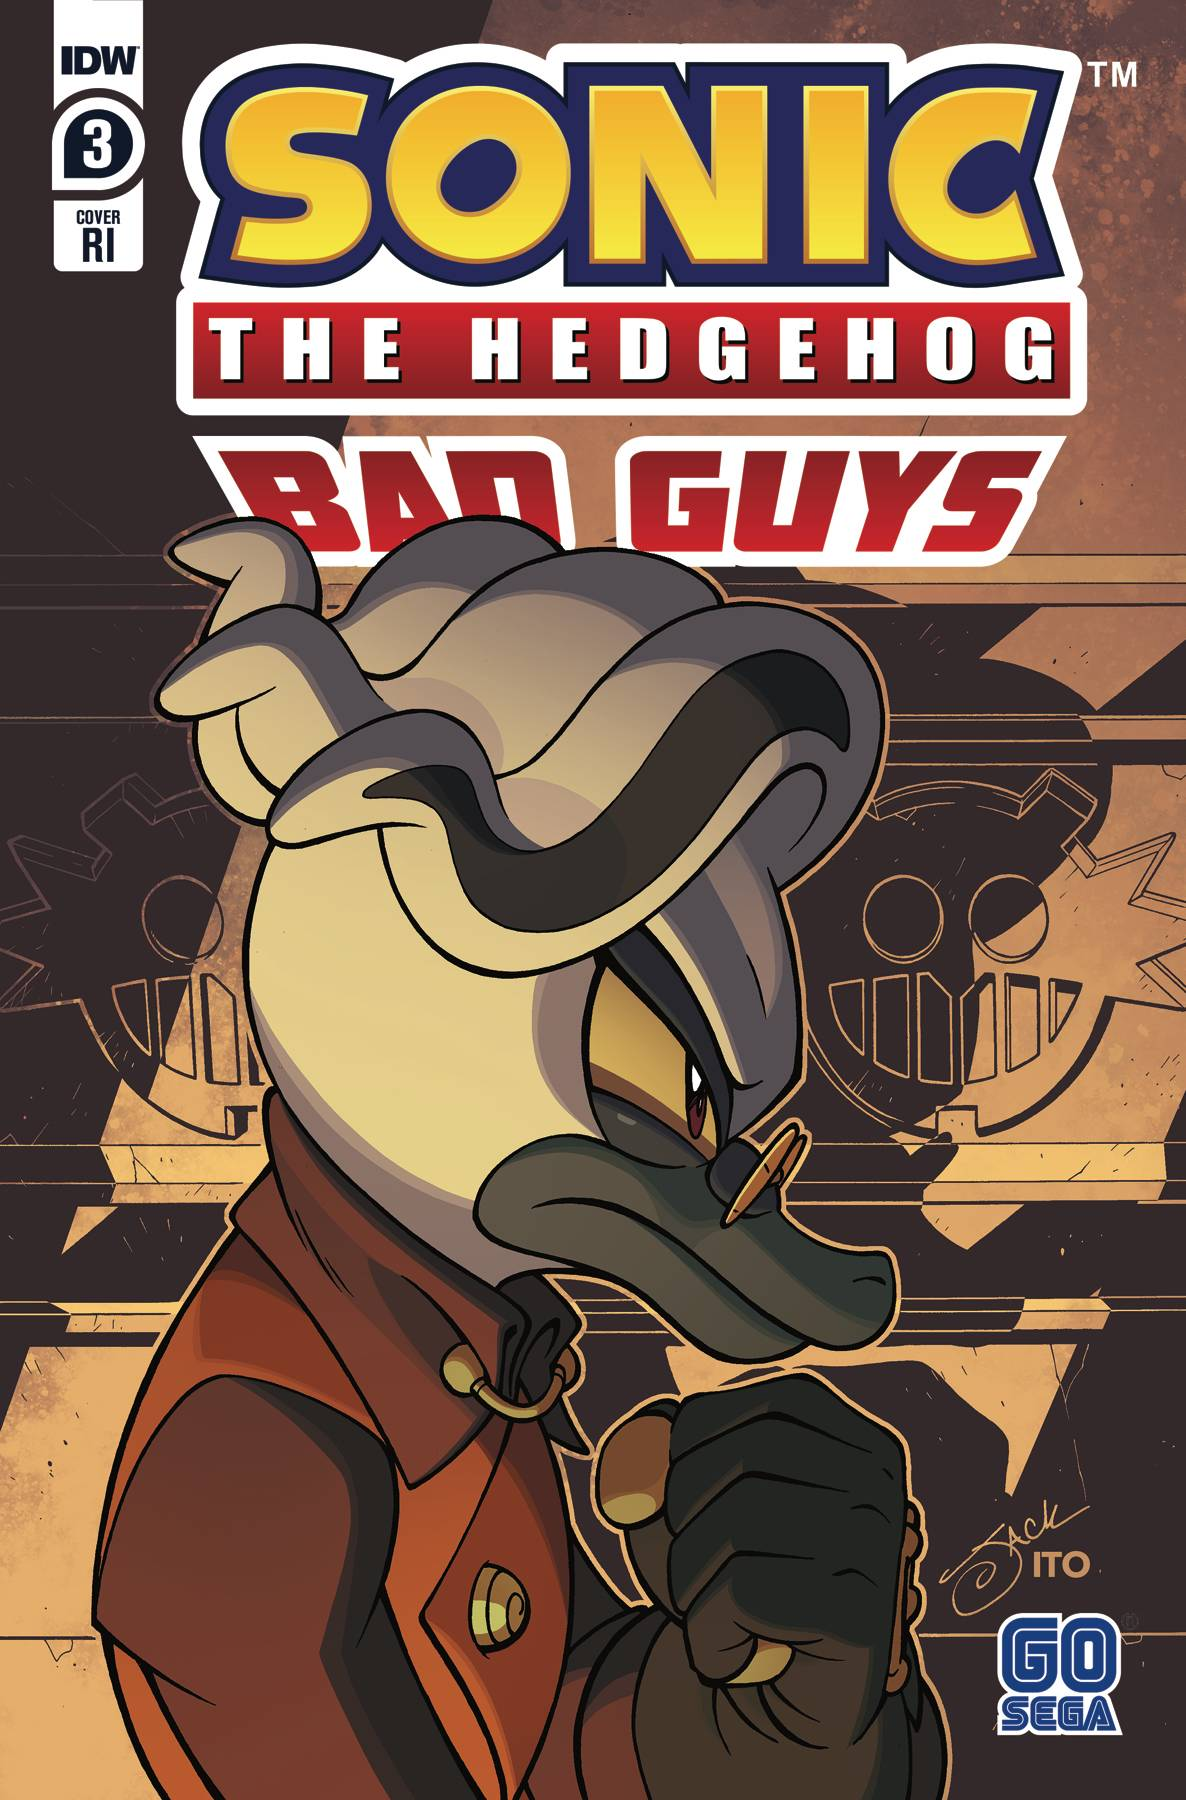 Sonic The Hedgehog: Bad Guys #3